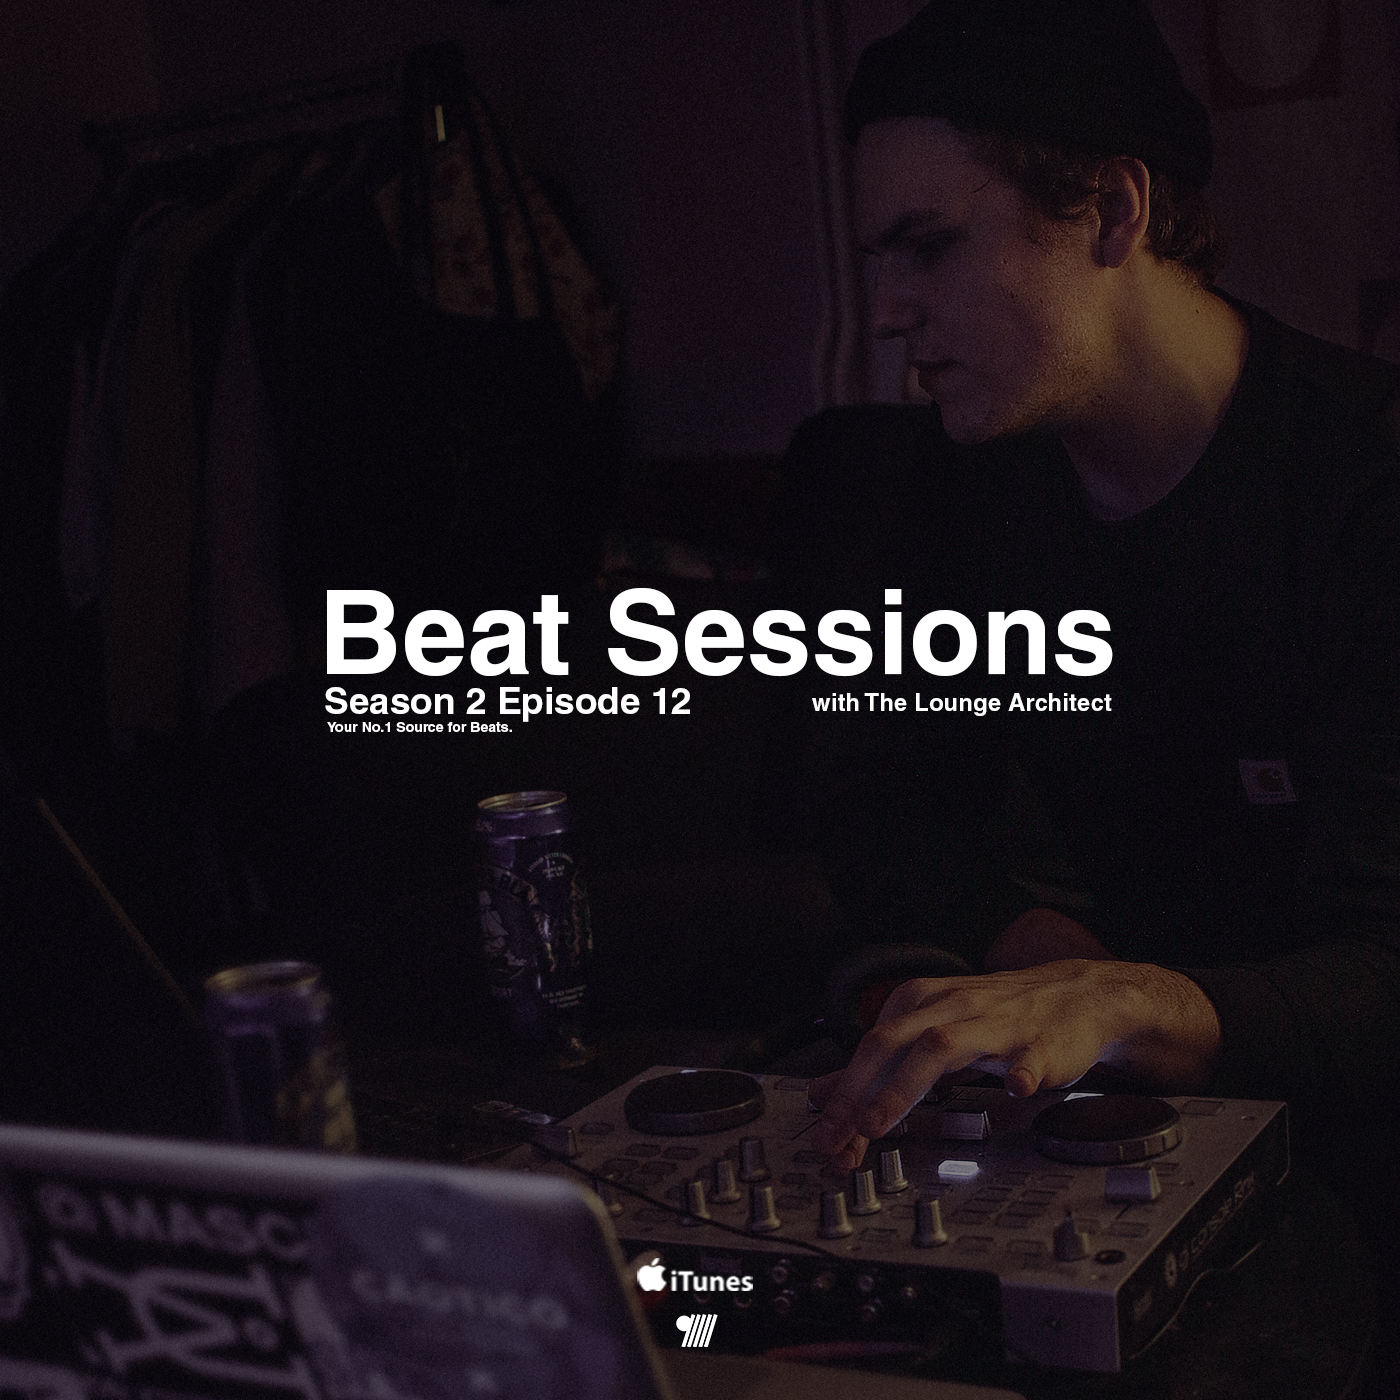 Beat Sessions - Season 2 Episode 12